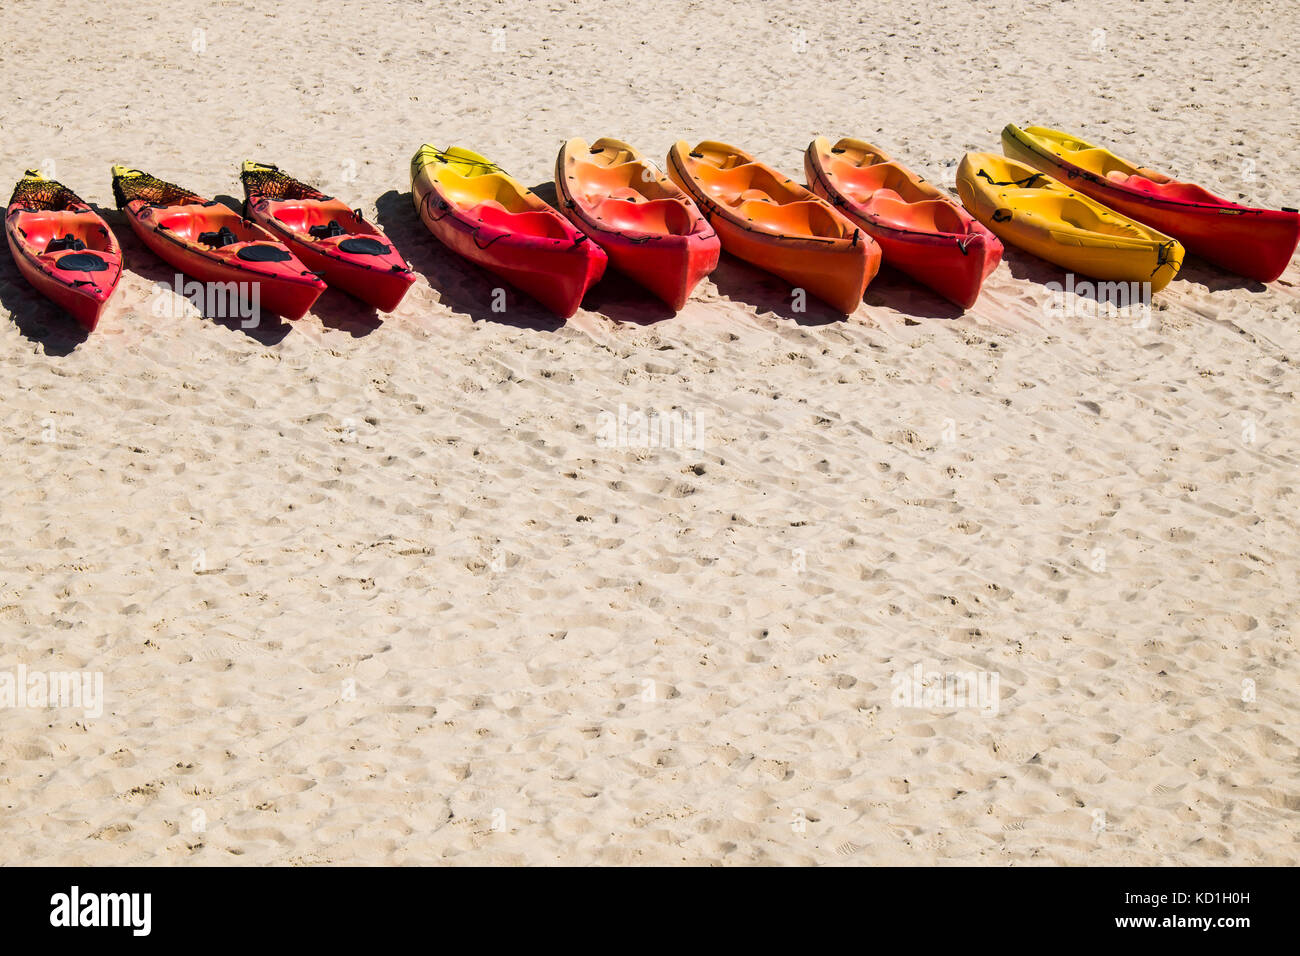 Hire canoes lined up on a beach looking well used at the end of the season. Stock Photo